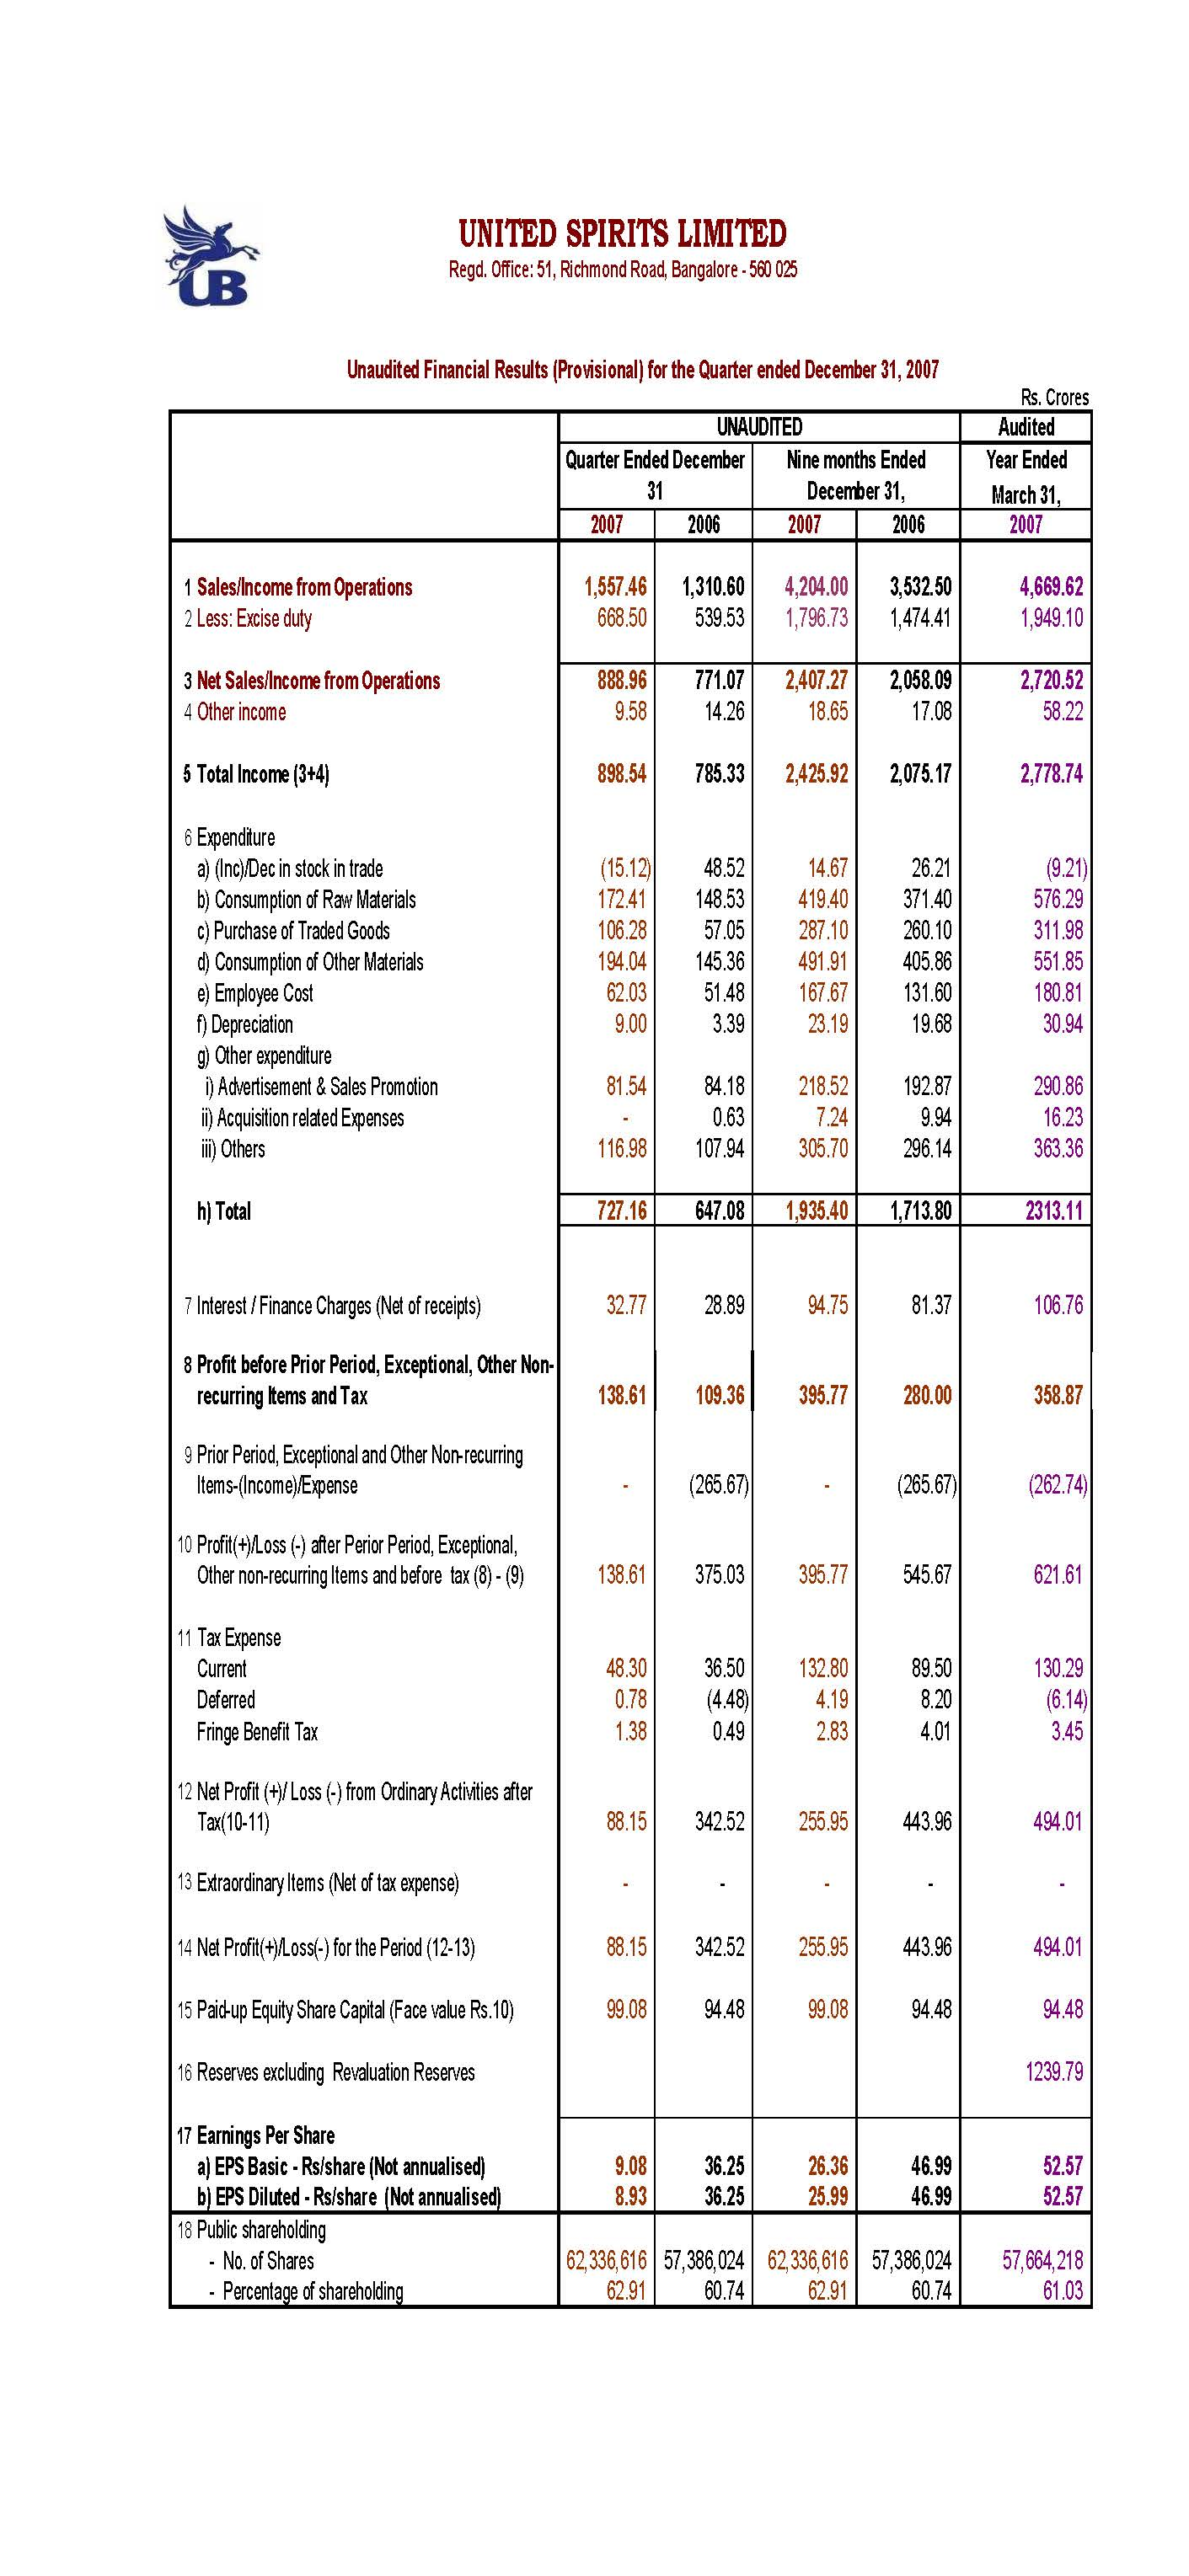 Unaudited Financial Results (Provisional) for the Quarter ended December 31, 2007